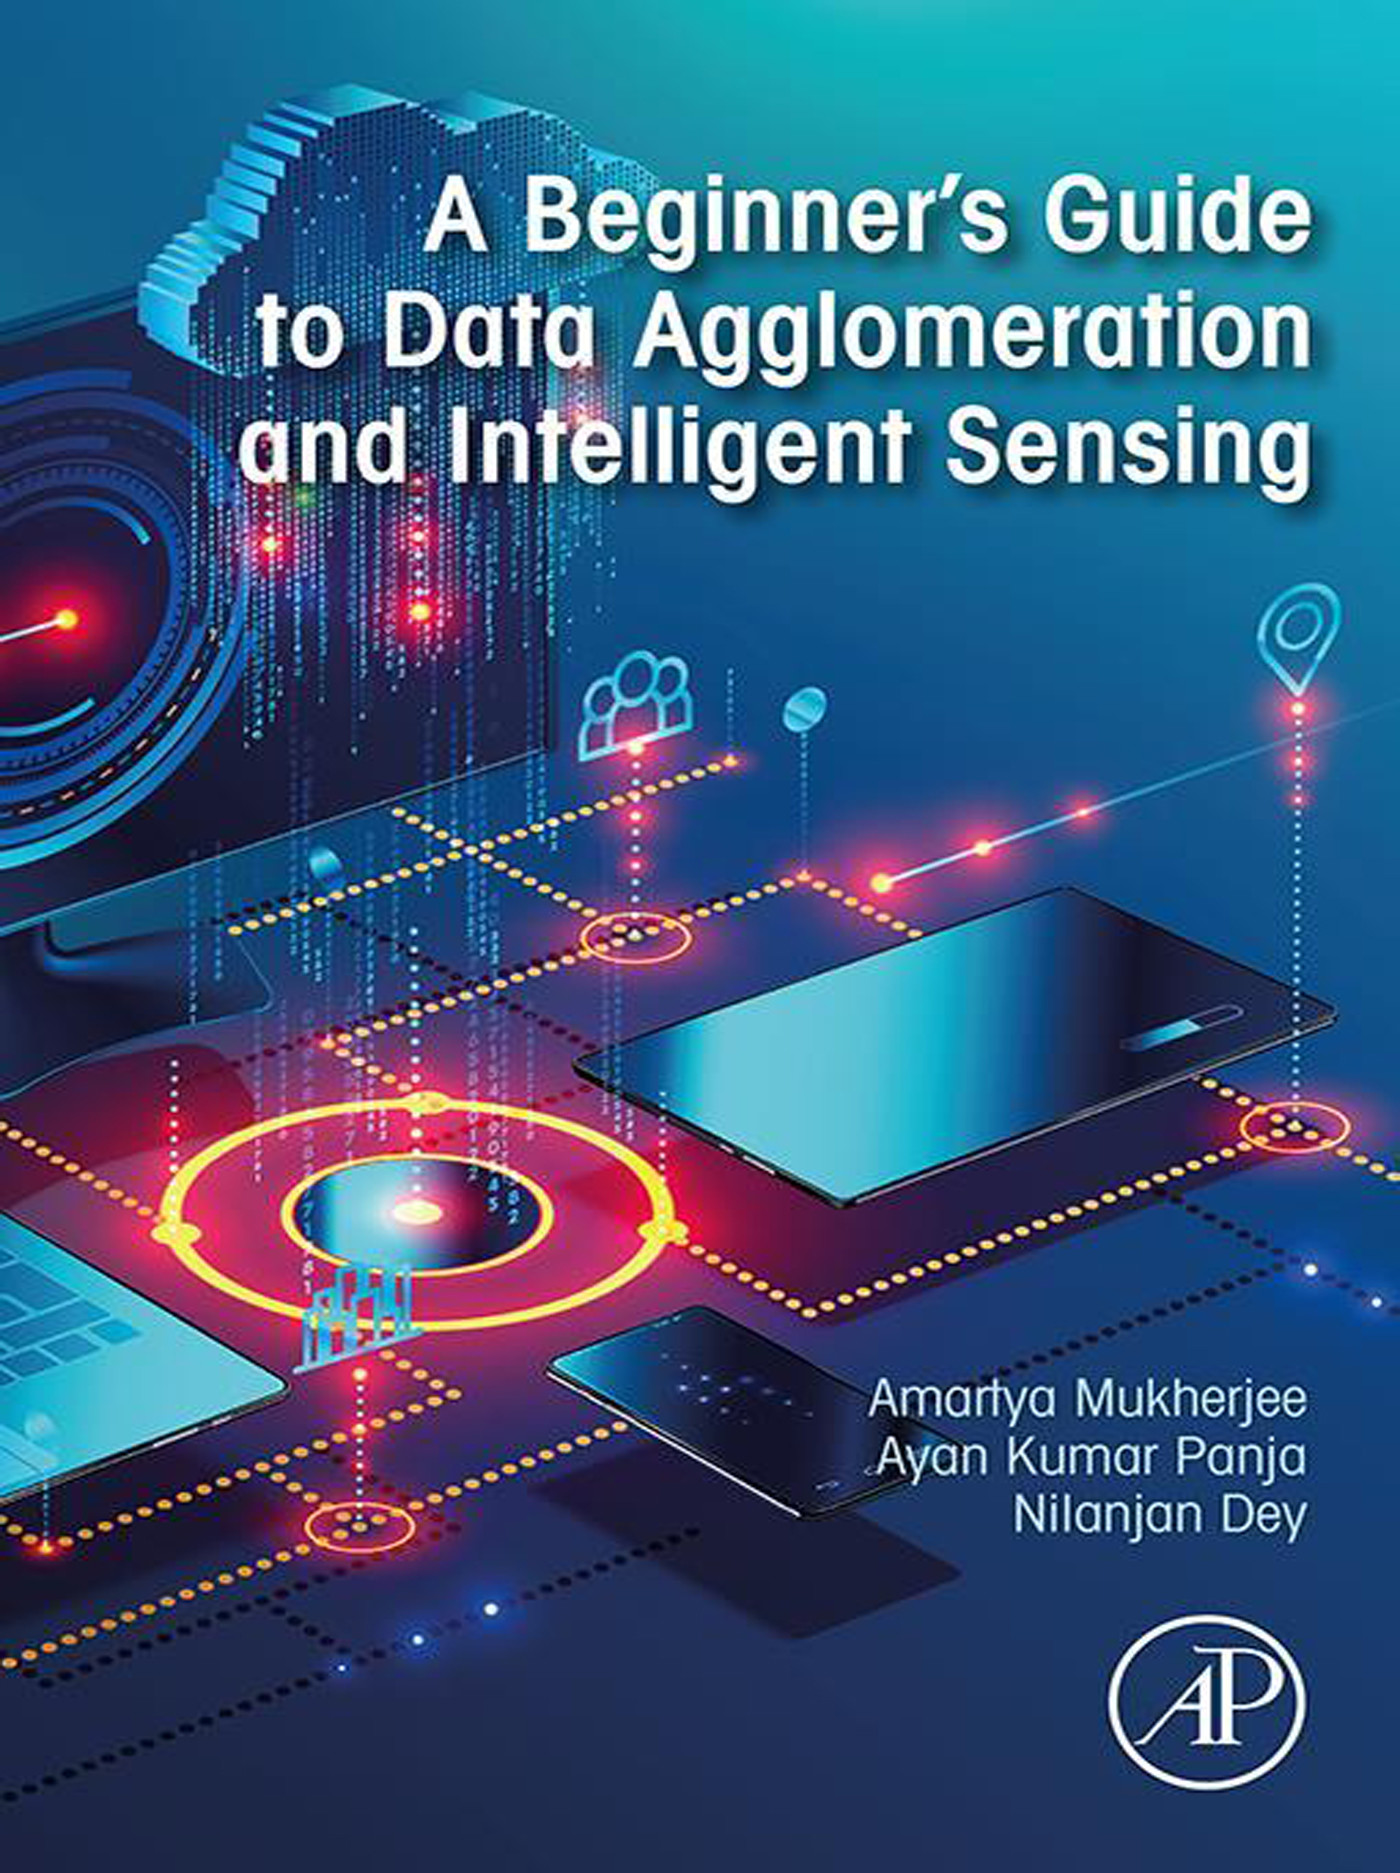 A Beginner's Guide to Data Agglomeration and Intelligent Sensing